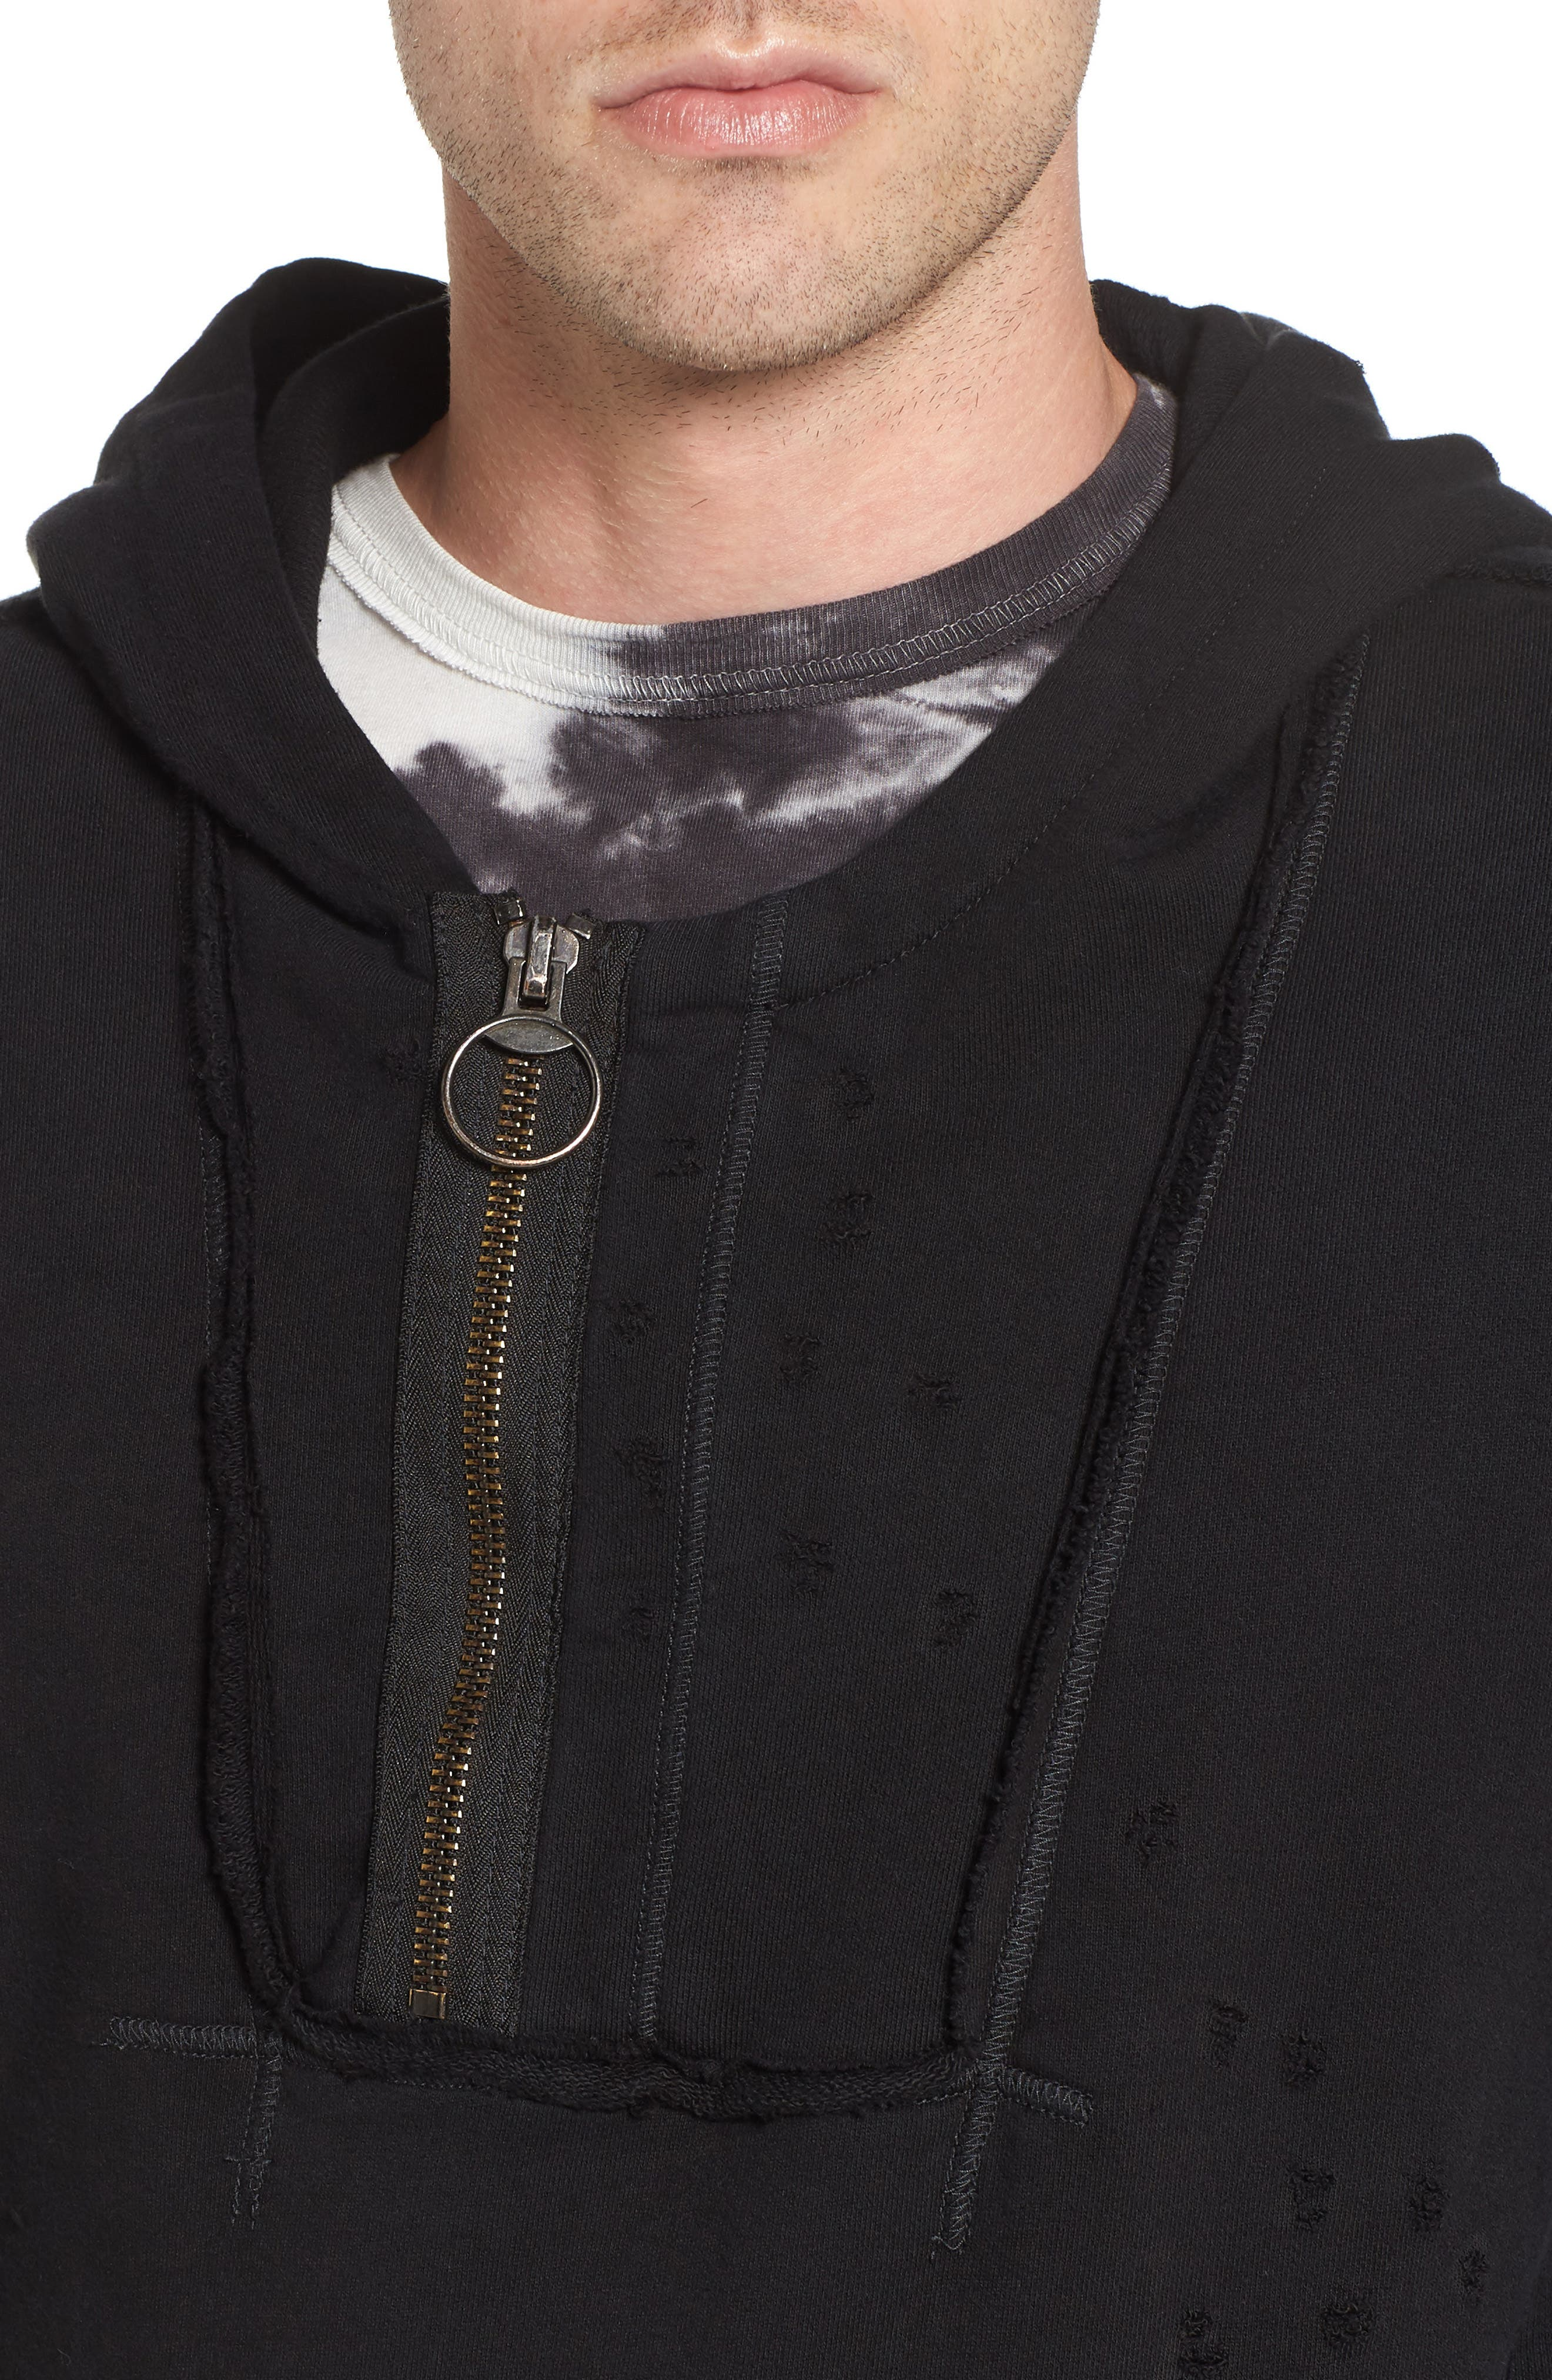 Distressed Pullover Hoodie,                             Alternate thumbnail 4, color,                             001